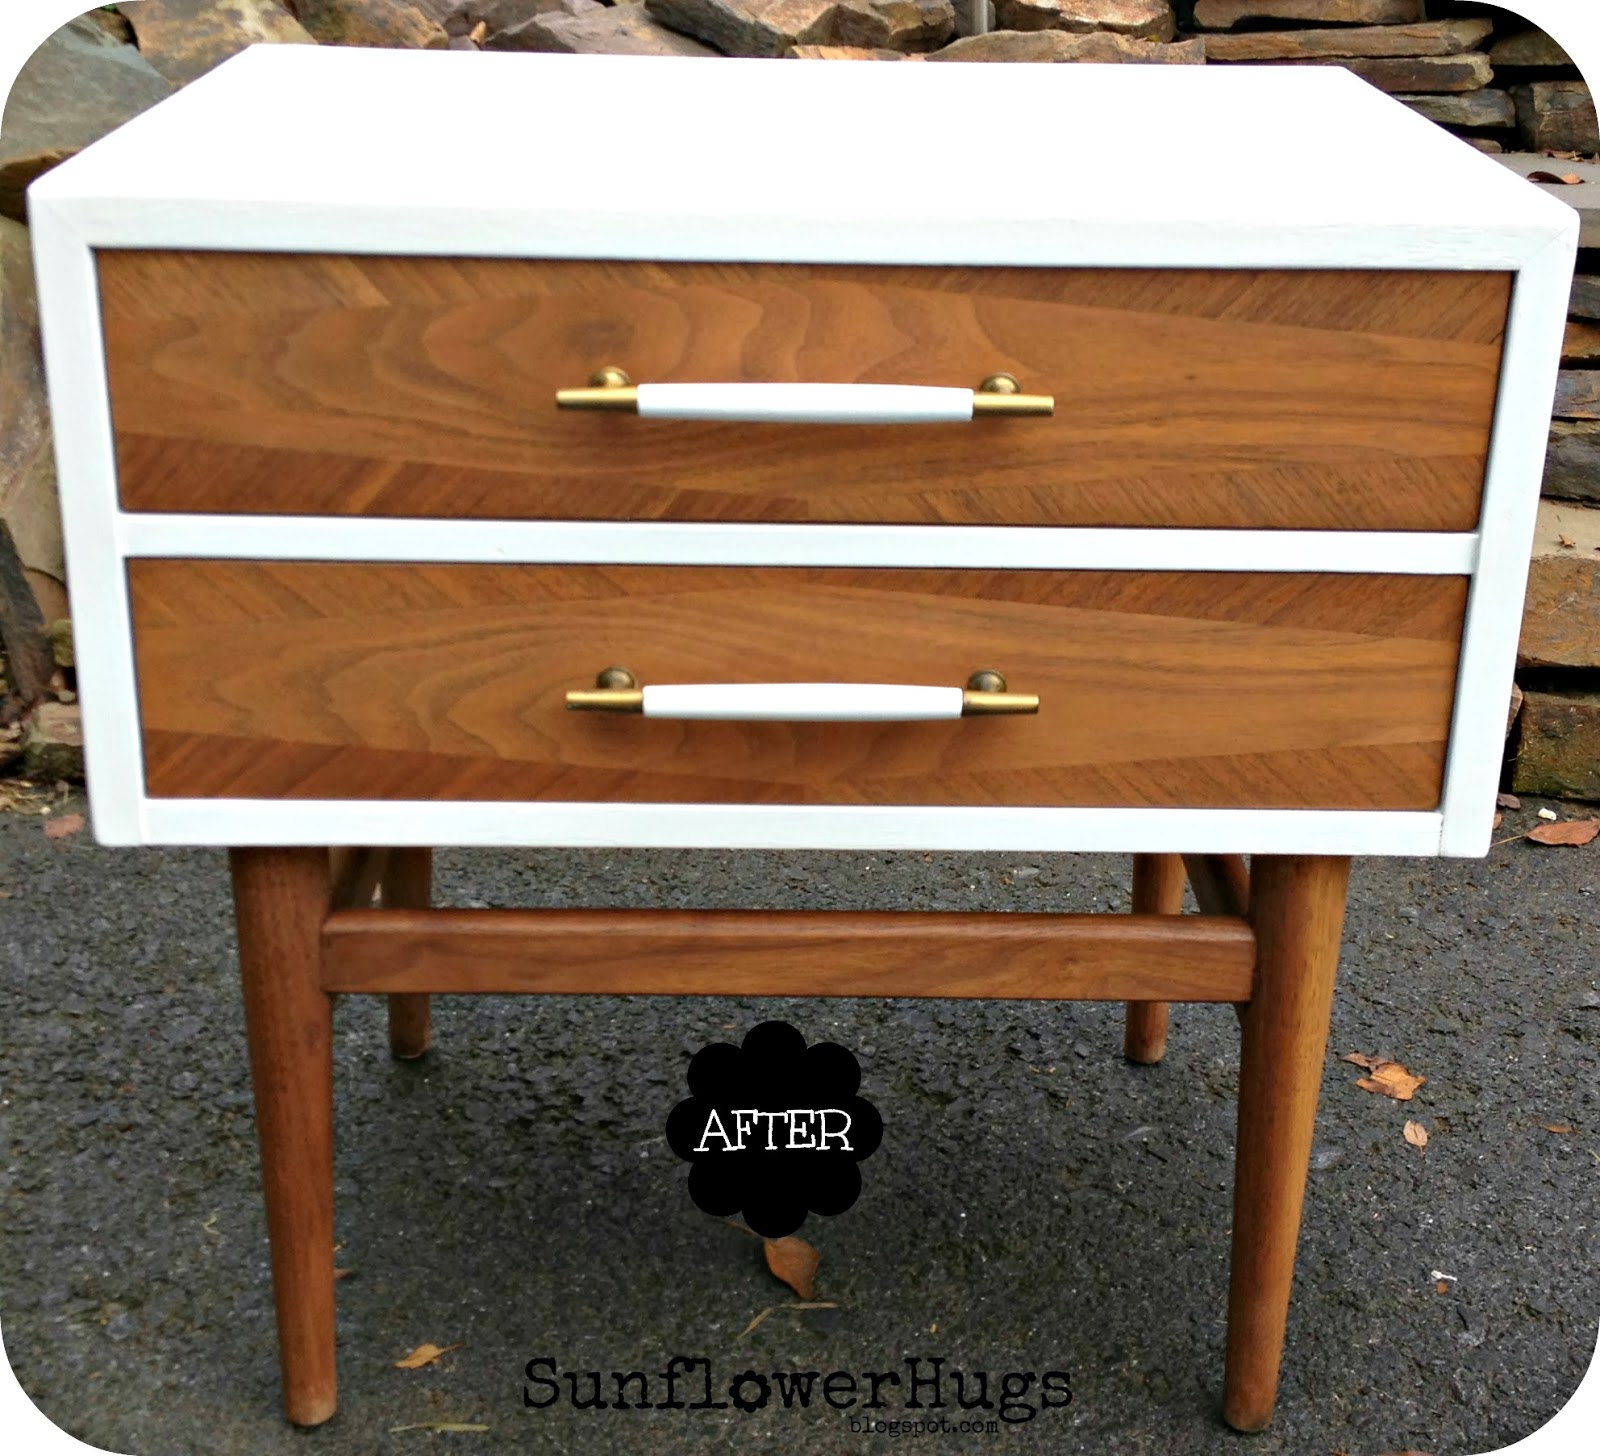 I Coated The Drawers And Legs With Annie Sloan Dark Wax Mixed Paint Thinner Love Color They Became